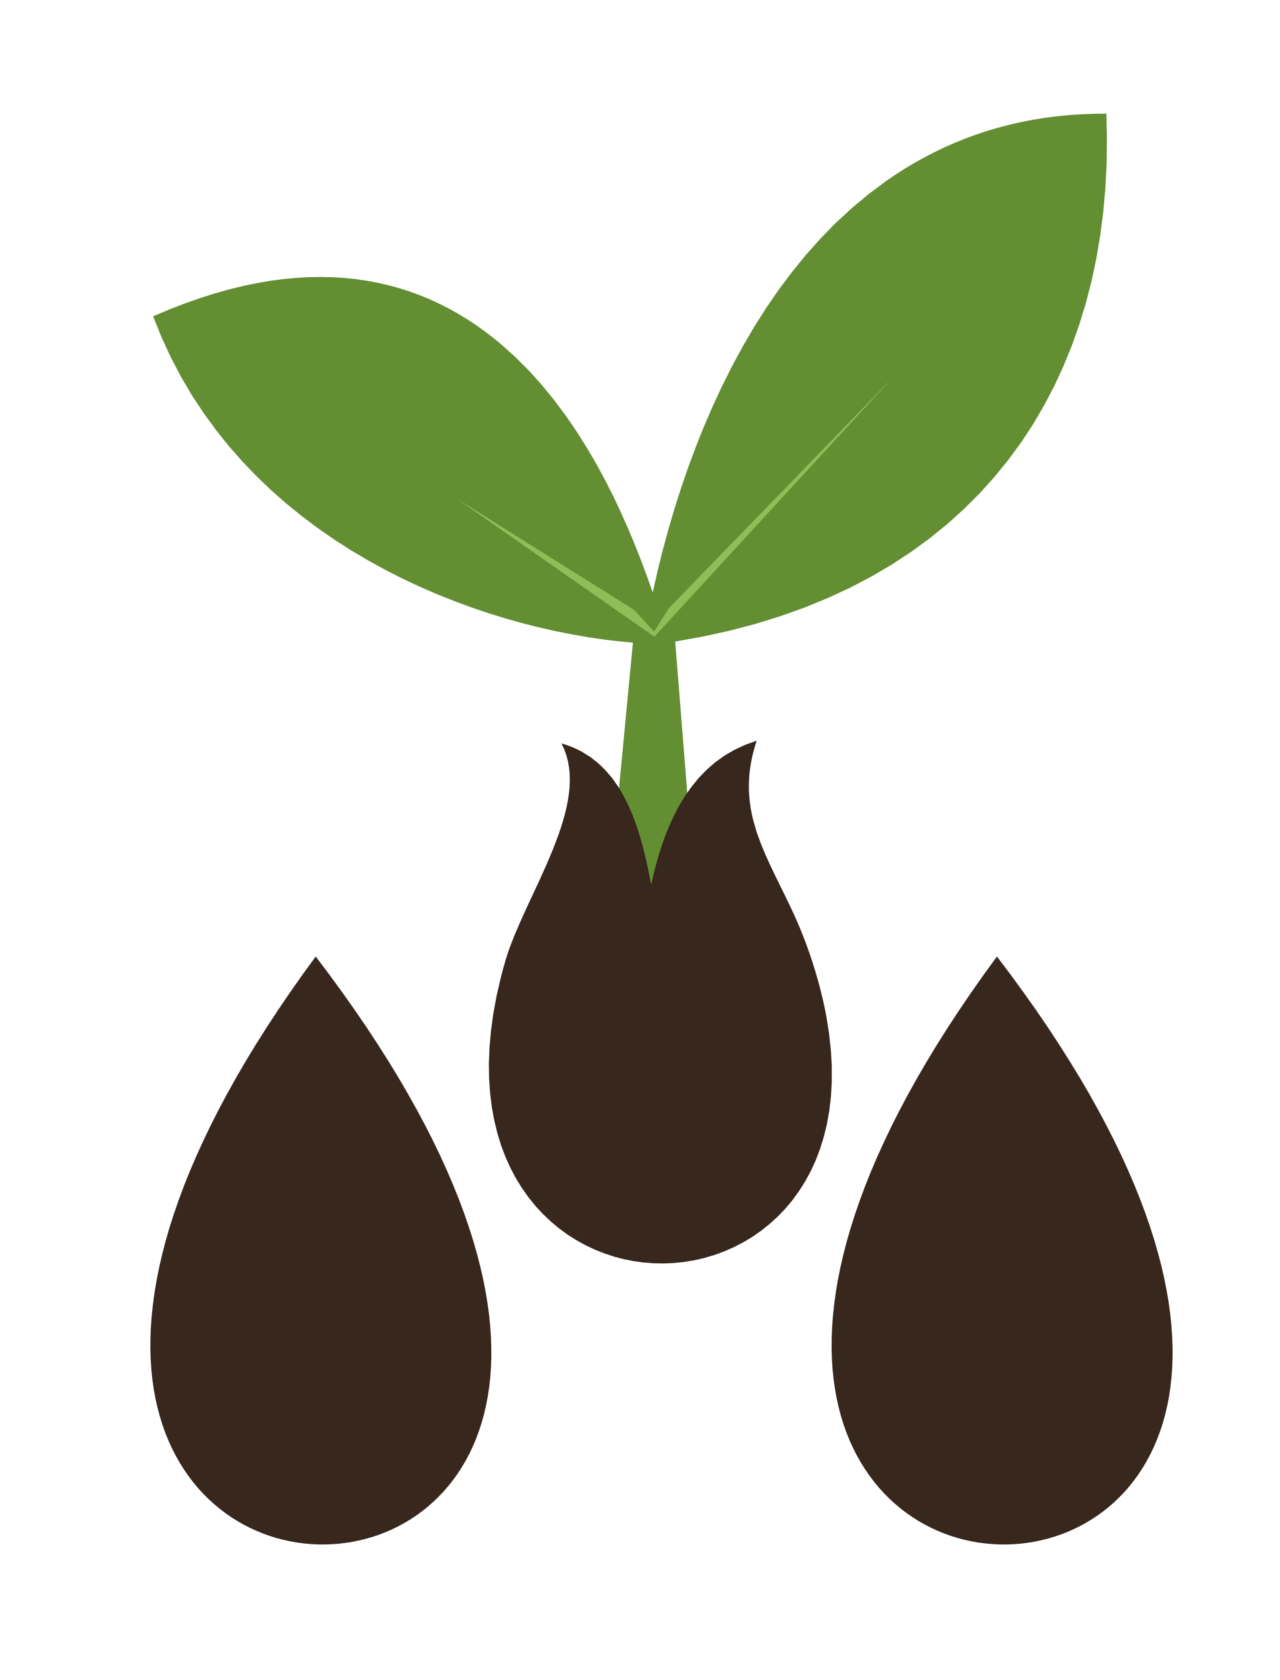 Seedling clipart coconut seed. Sprouting cutie mark crusaders